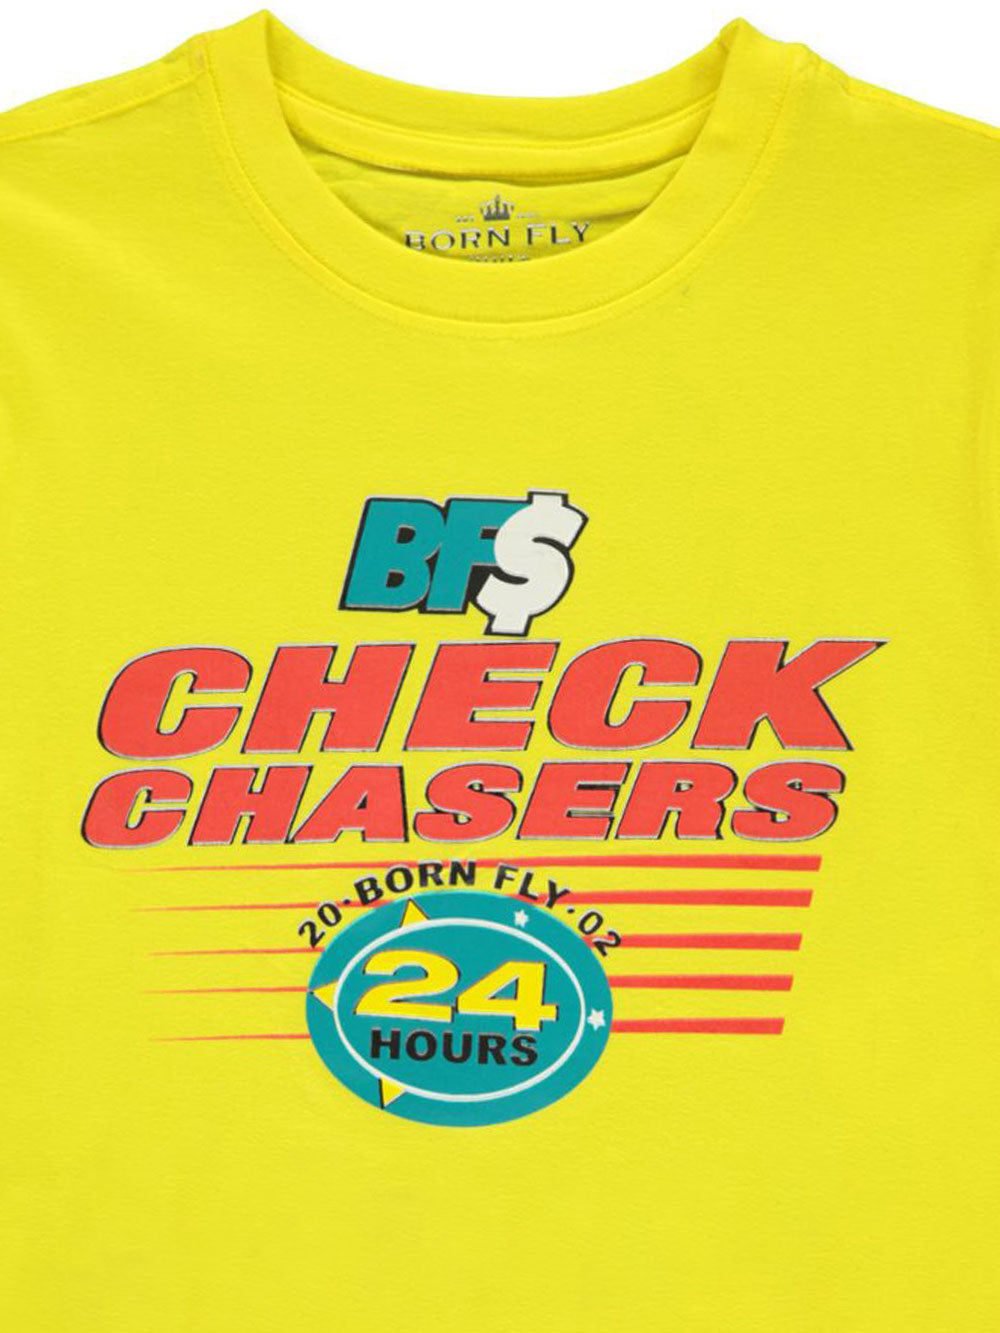 Born Fly Check Chasers Tee - FLY GUYZ